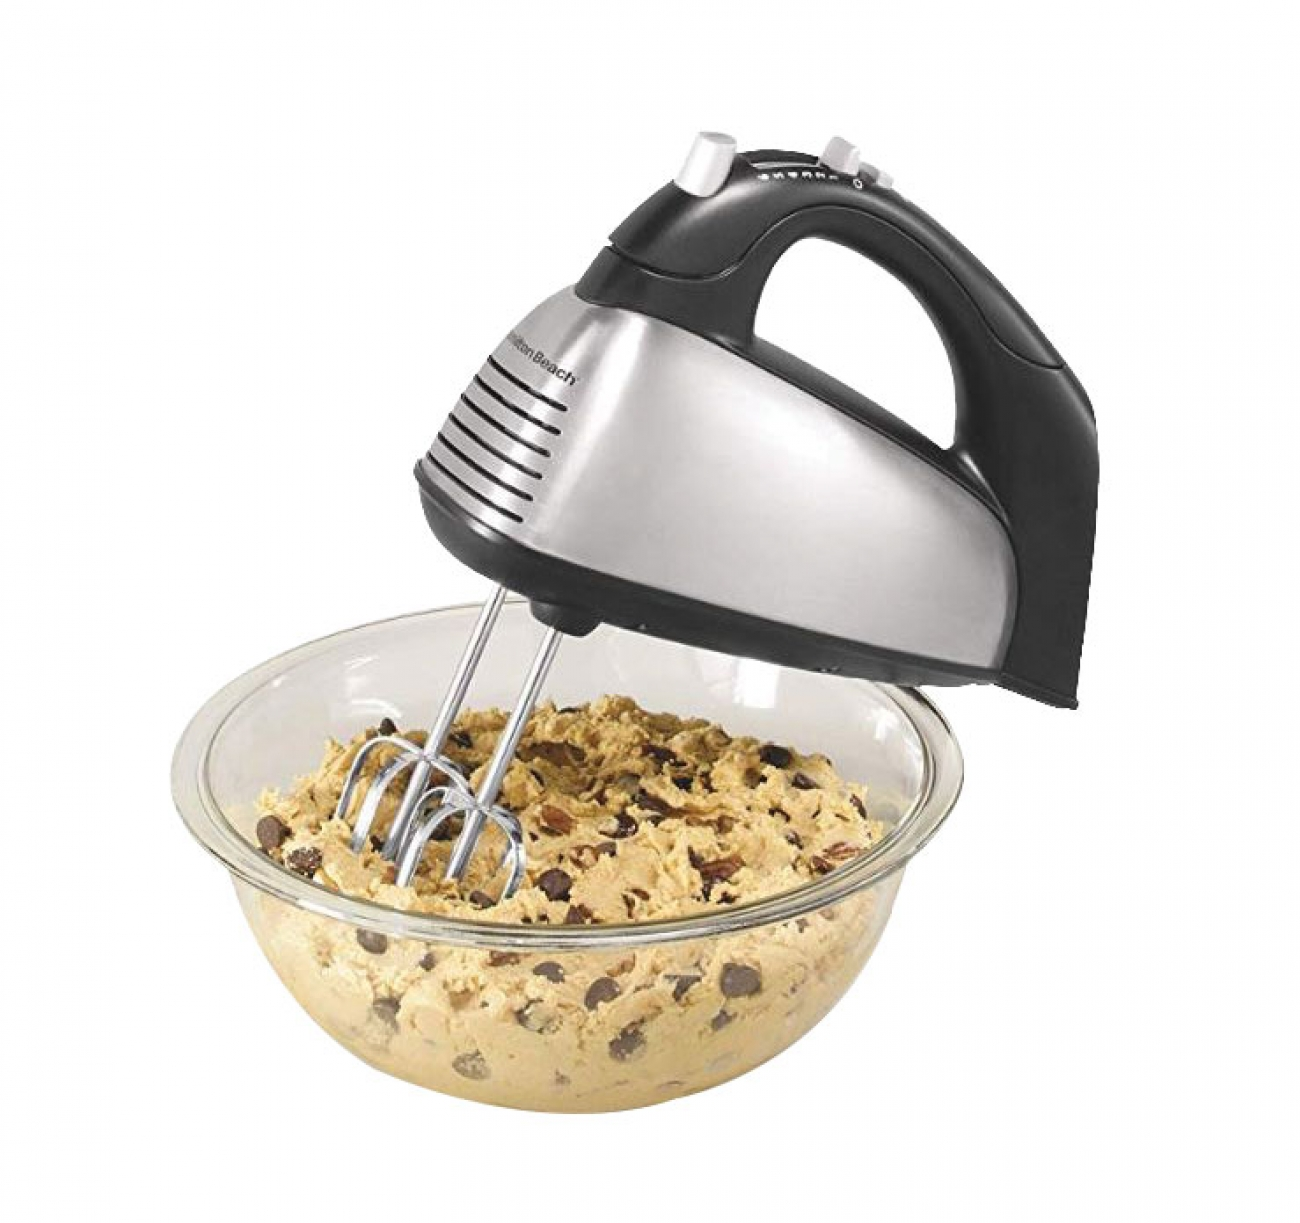 HB Classic Metal Hand mixer With SoftScrape